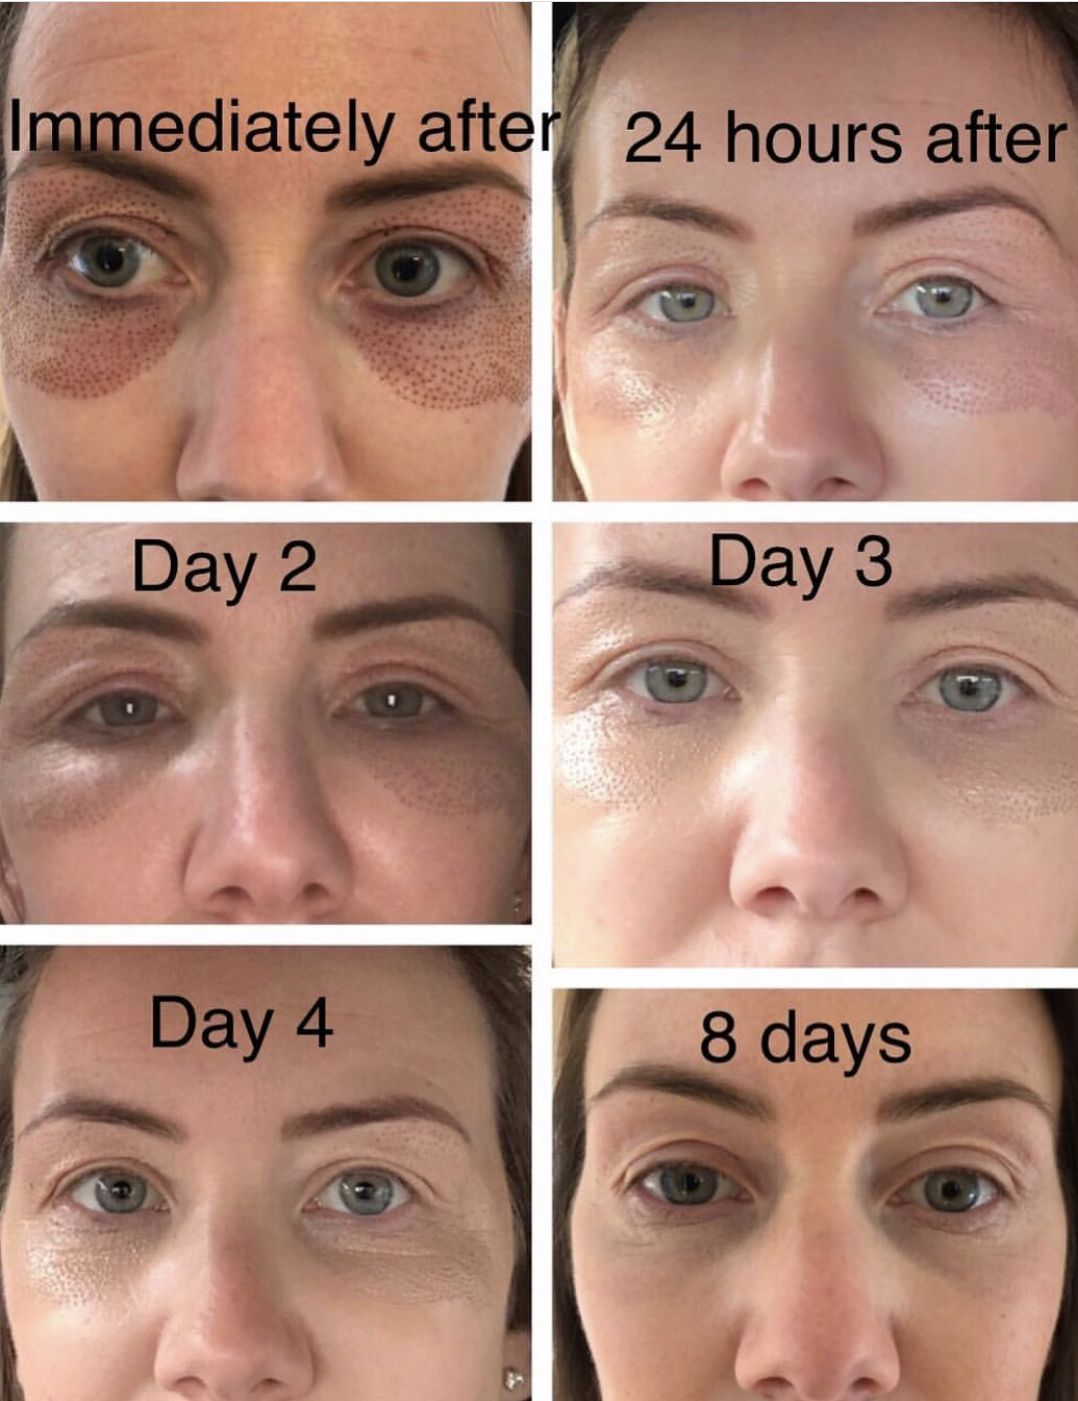 Plasma Pen Eye Treatment Here S What You Can Expect For The First Week Plasmapenbystacey Skin Tightening Treatments Skin Therapy Laser Skin Treatment